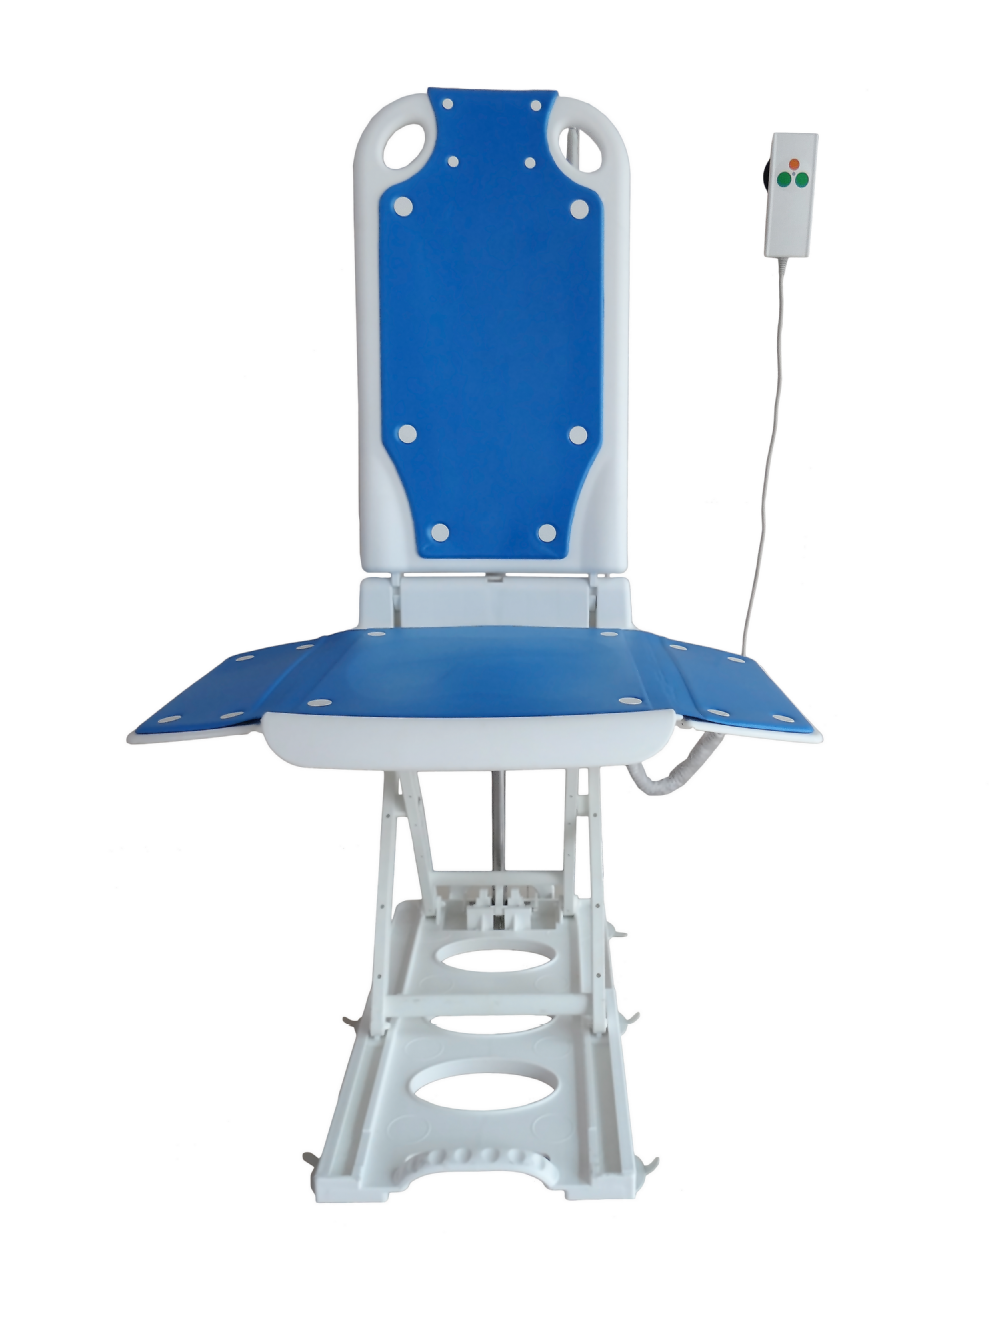 Jiecang Jc35m3 Safety Medical Hospital And Home Caring Electric Lift ...